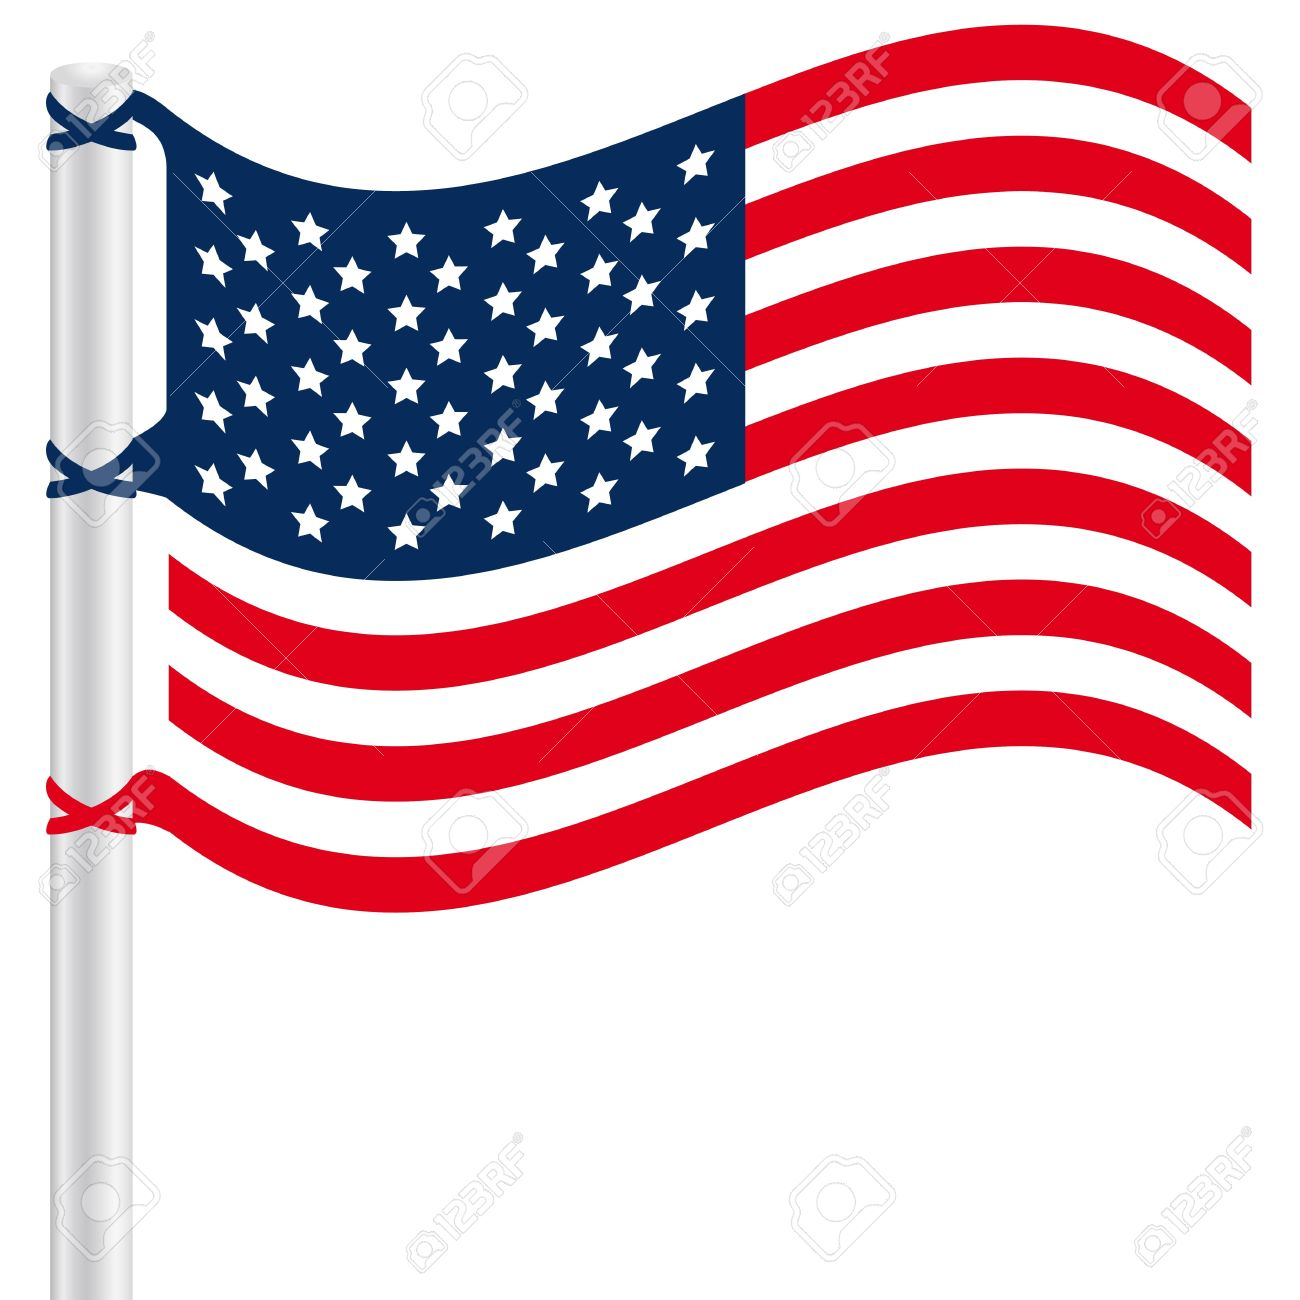 Us flag clipart vector png transparent Waving flag clipart vector - ClipartFest png transparent